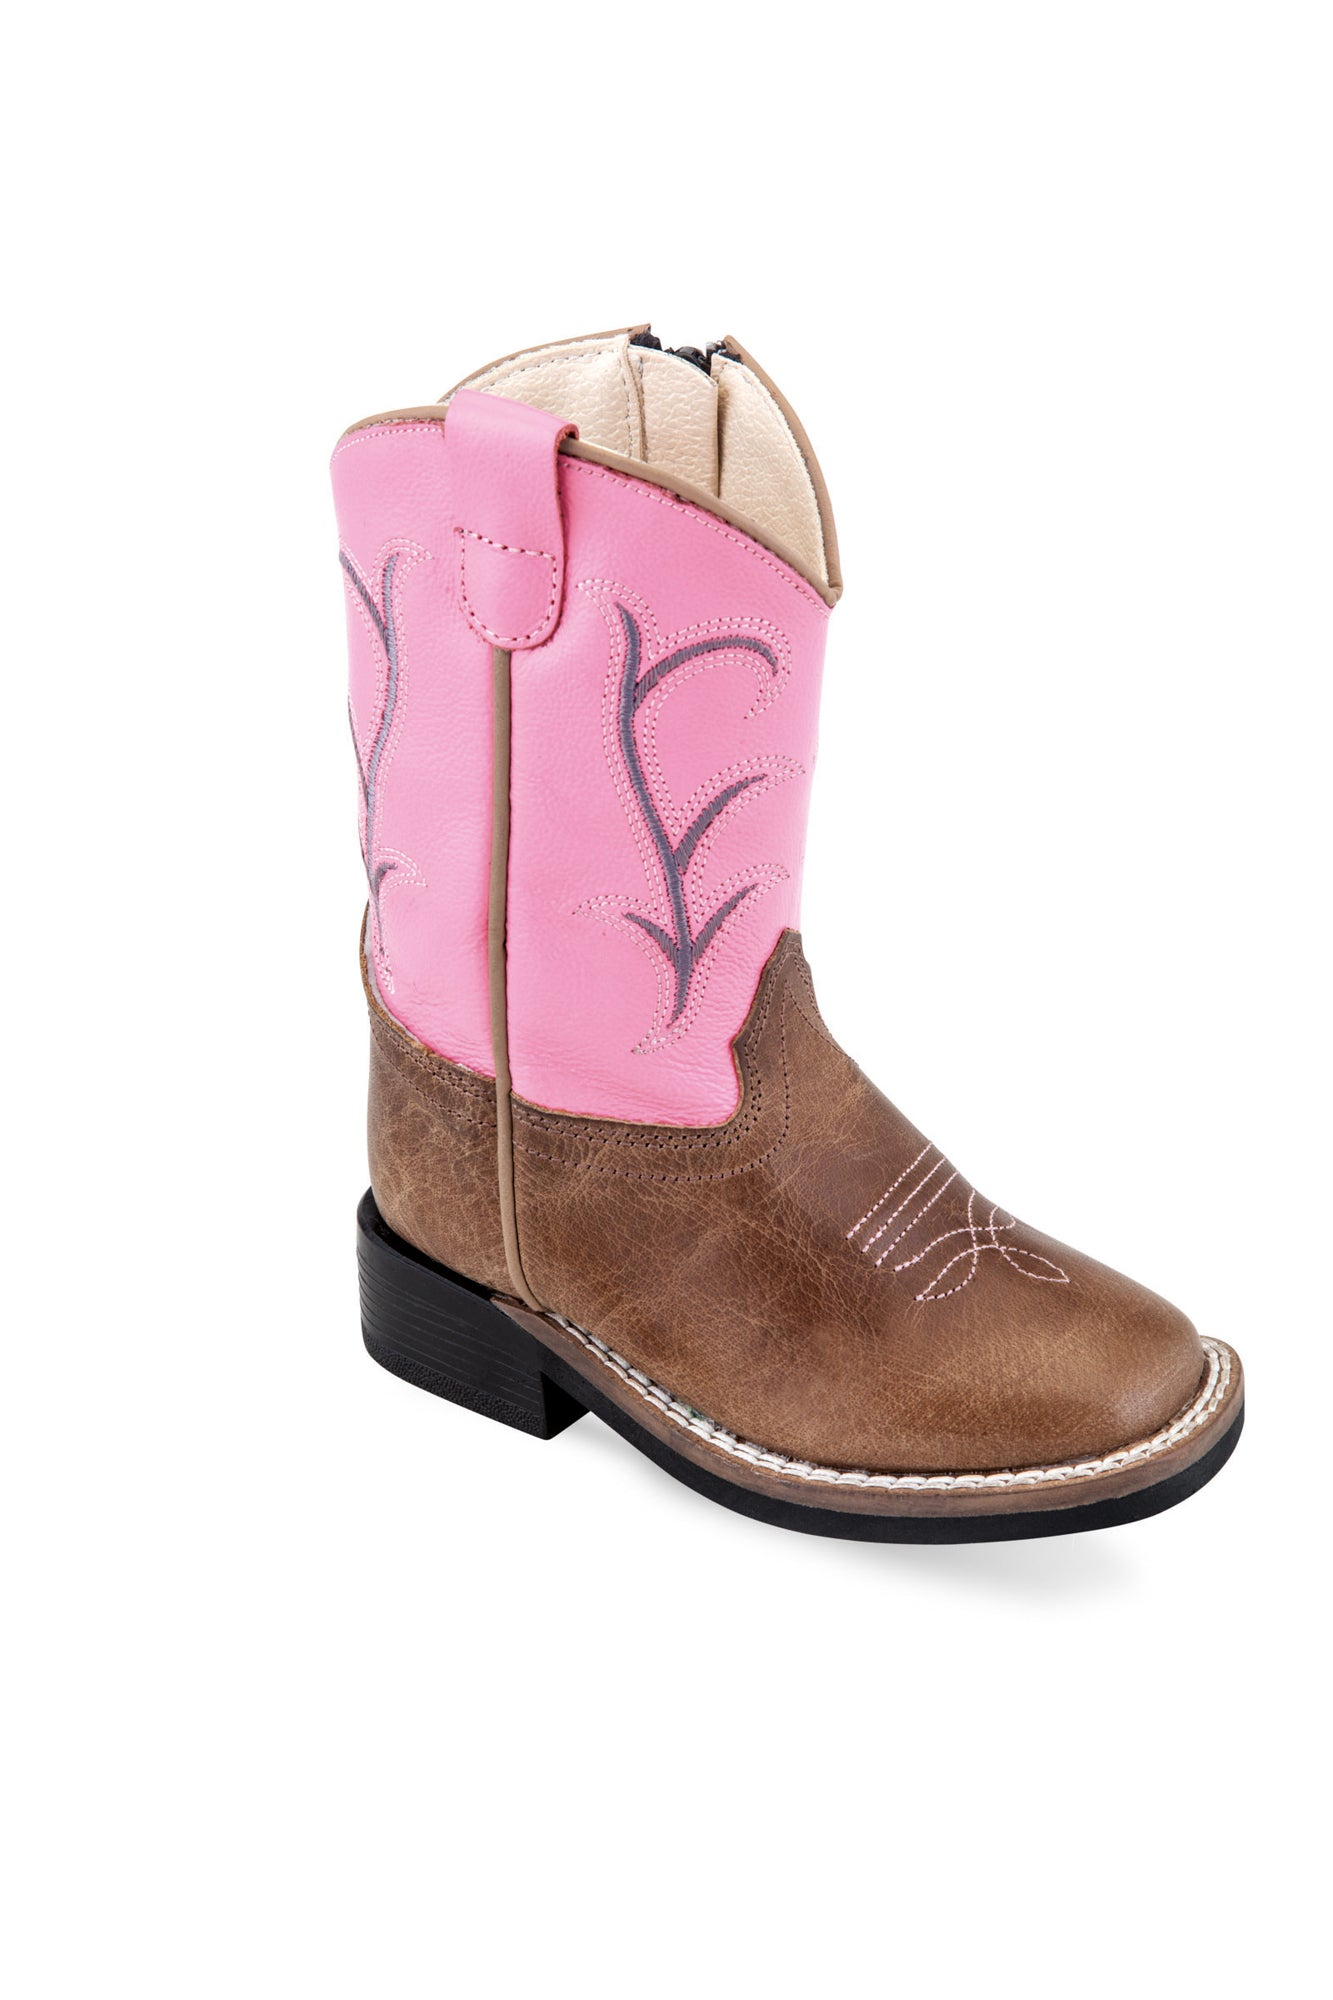 647a381b7e5 Old West Pink/Tan Toddler Girls Leather Western Cowboy Boots